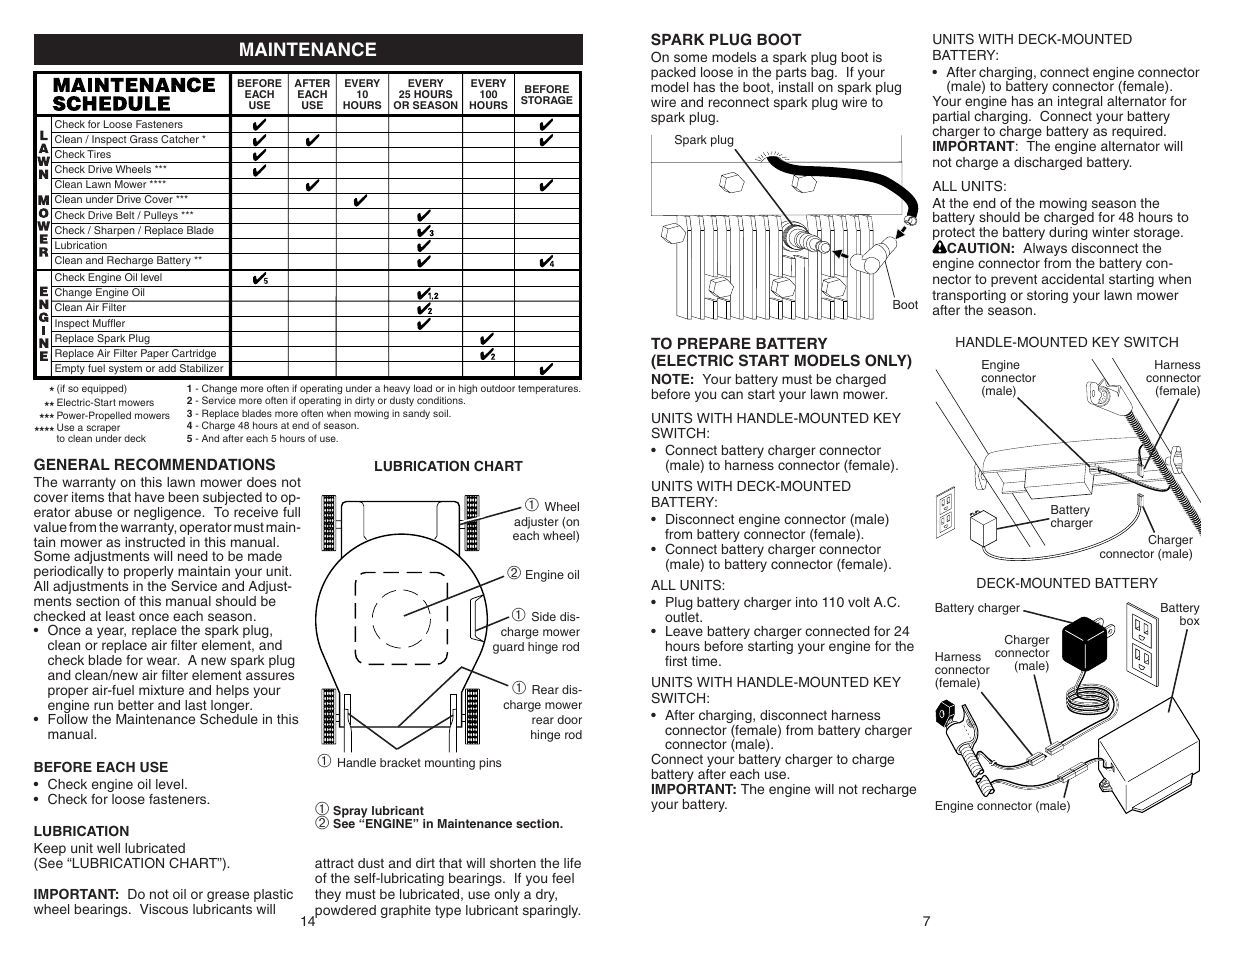 Maintenance Poulan Pro Pr625y22rkp Lawn Mower User Manual Page 7 Wiring Diagram 10